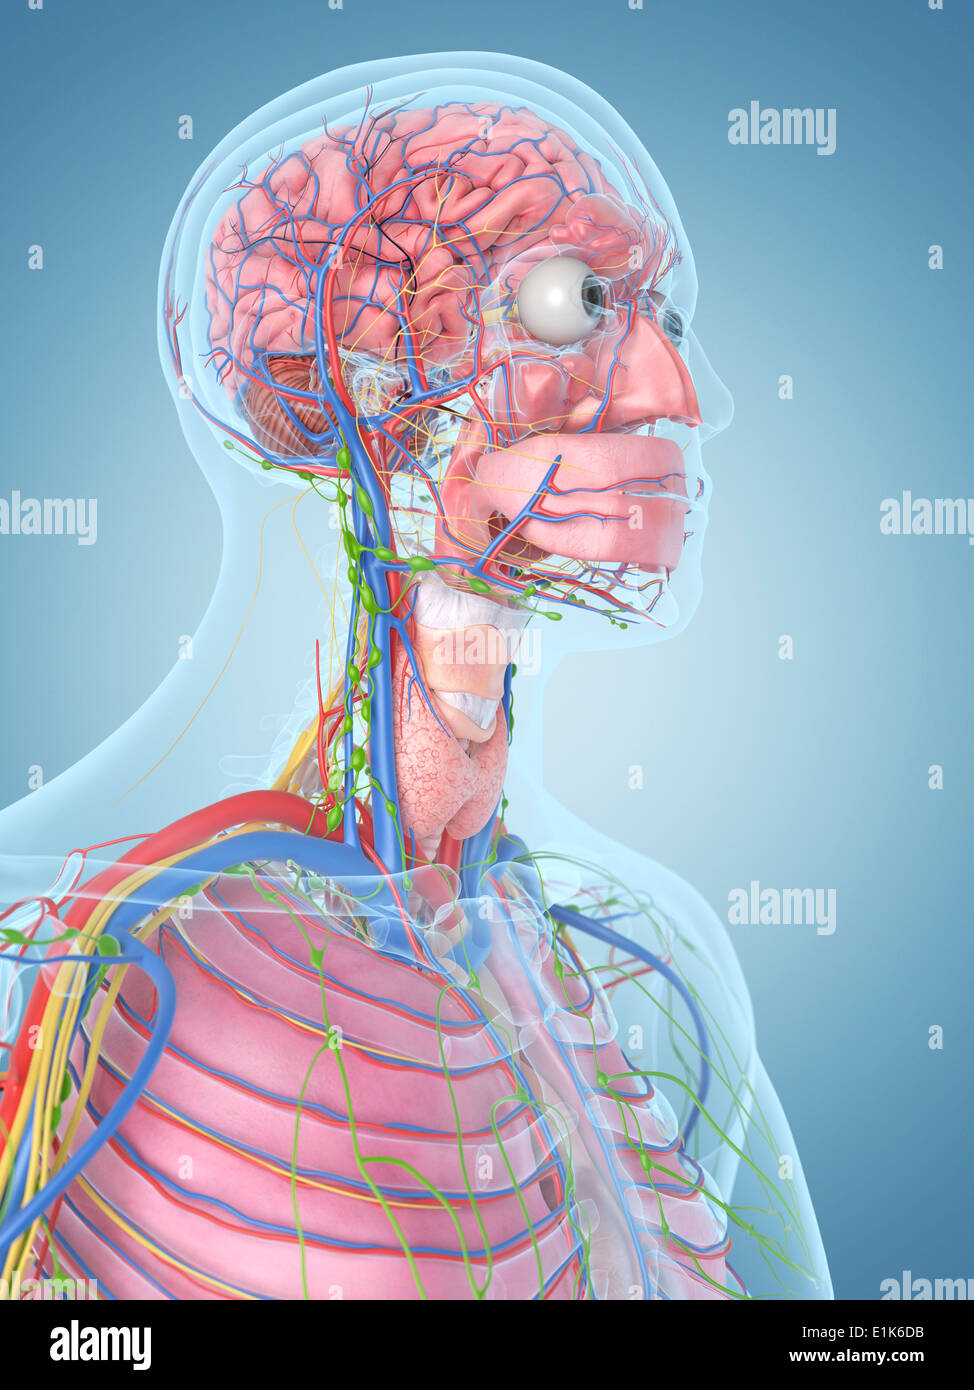 Human Head And Blood Vessels Computer Artwork Stock Photo 69878295